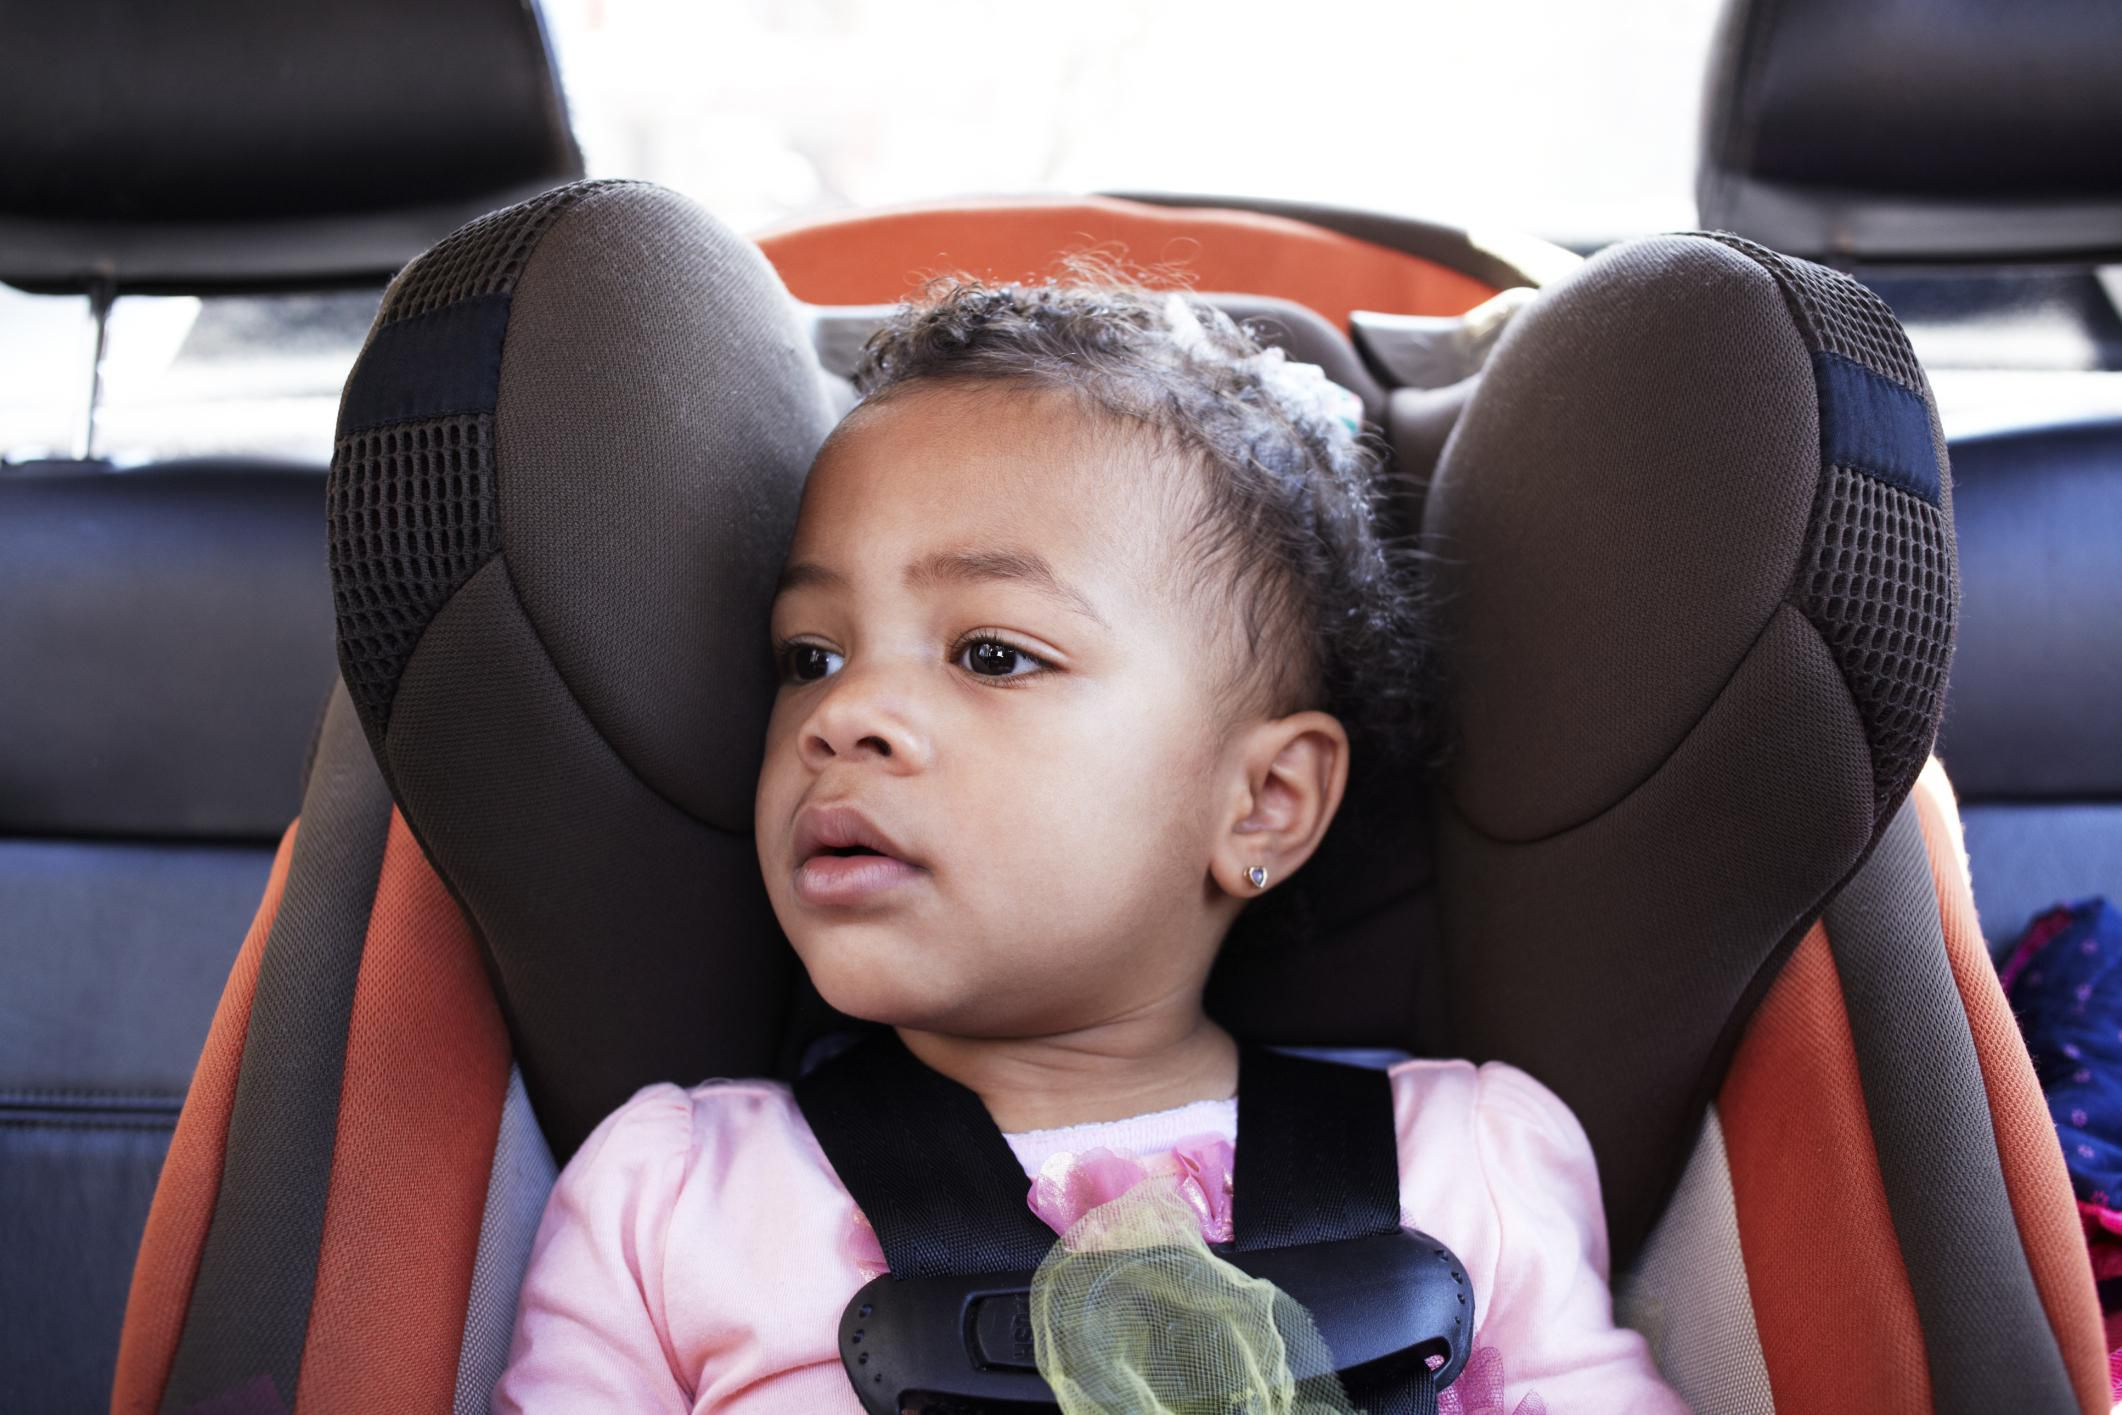 Wisconsin Traveling With A Baby Images Car Seat Laws Seek To Seriously Protect Kids Jpg